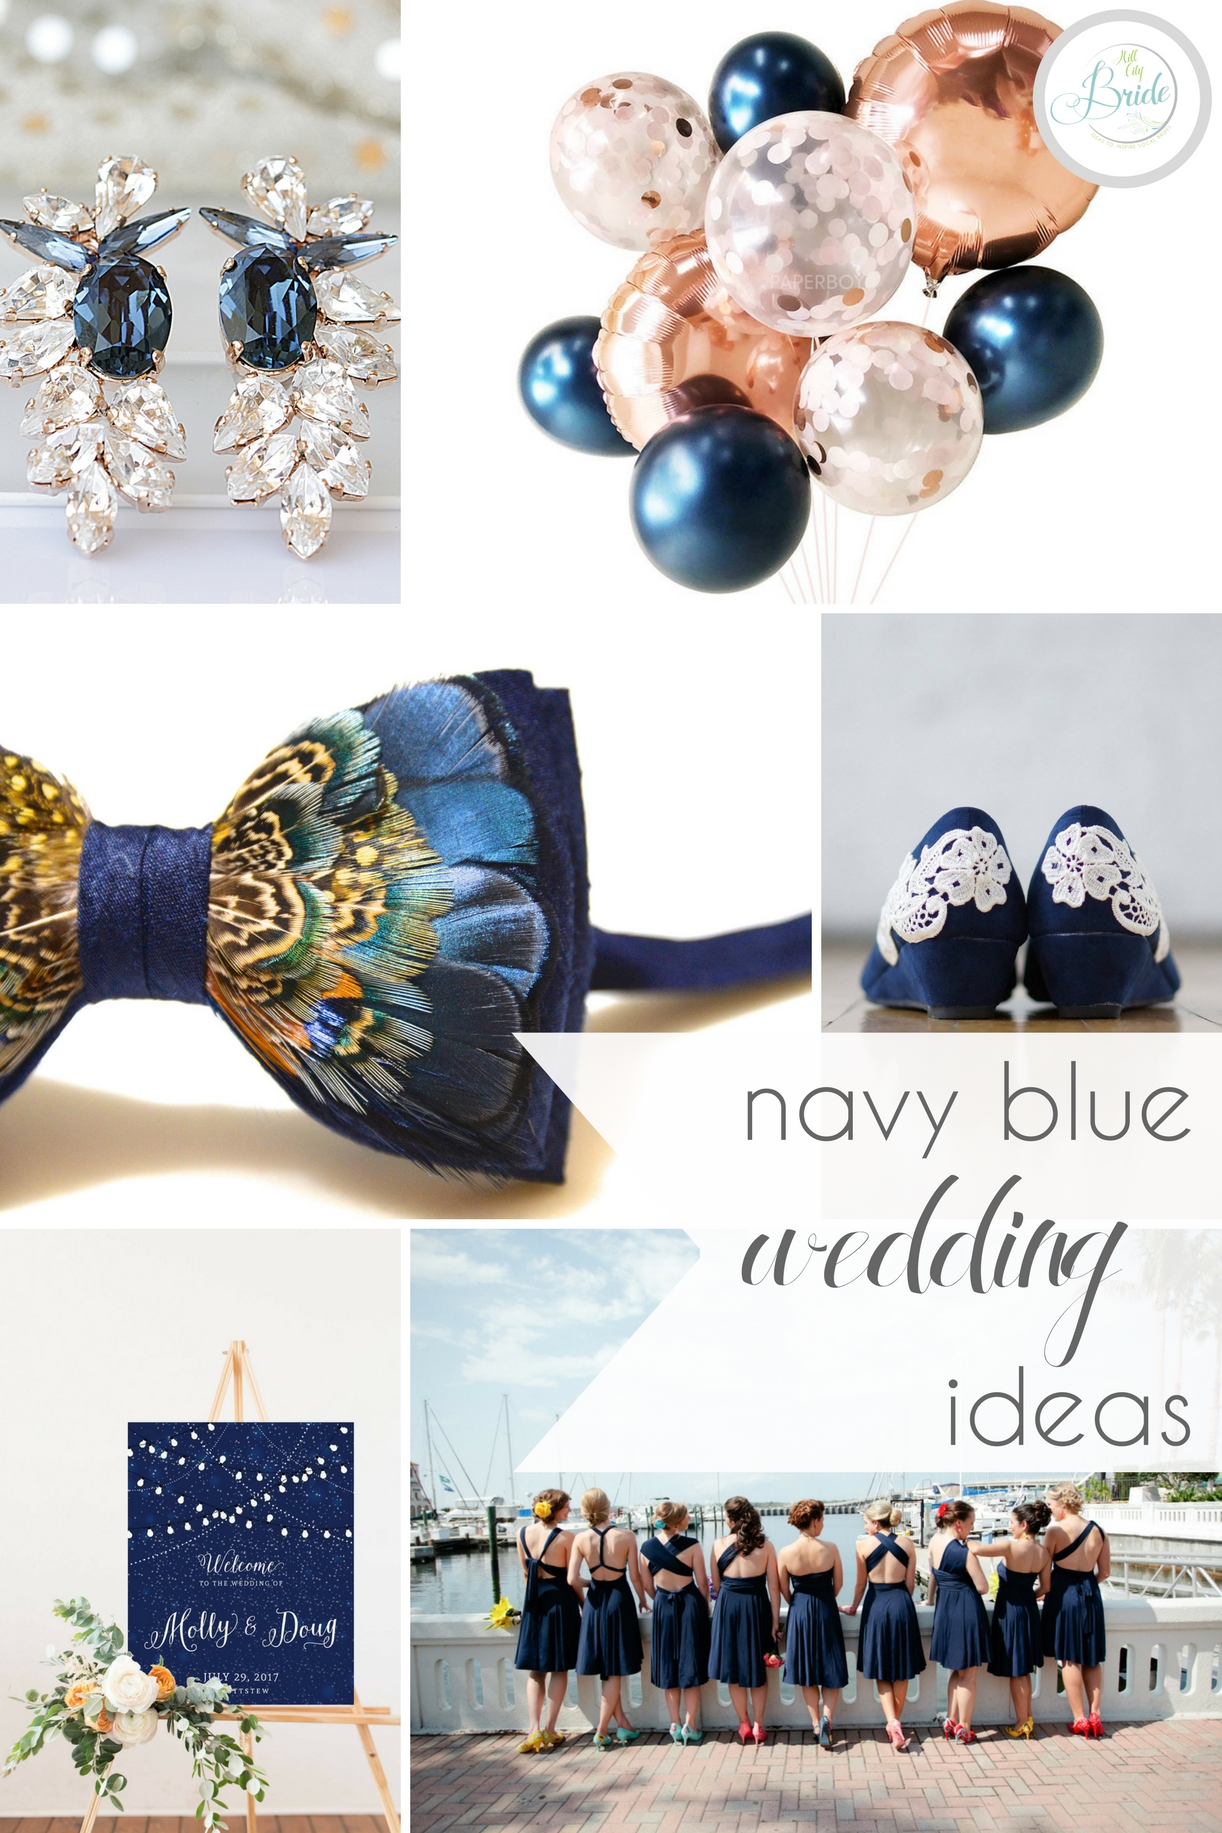 Navy Blue Wedding Ideas » Hill City Bride | Virginia Wedding Blog